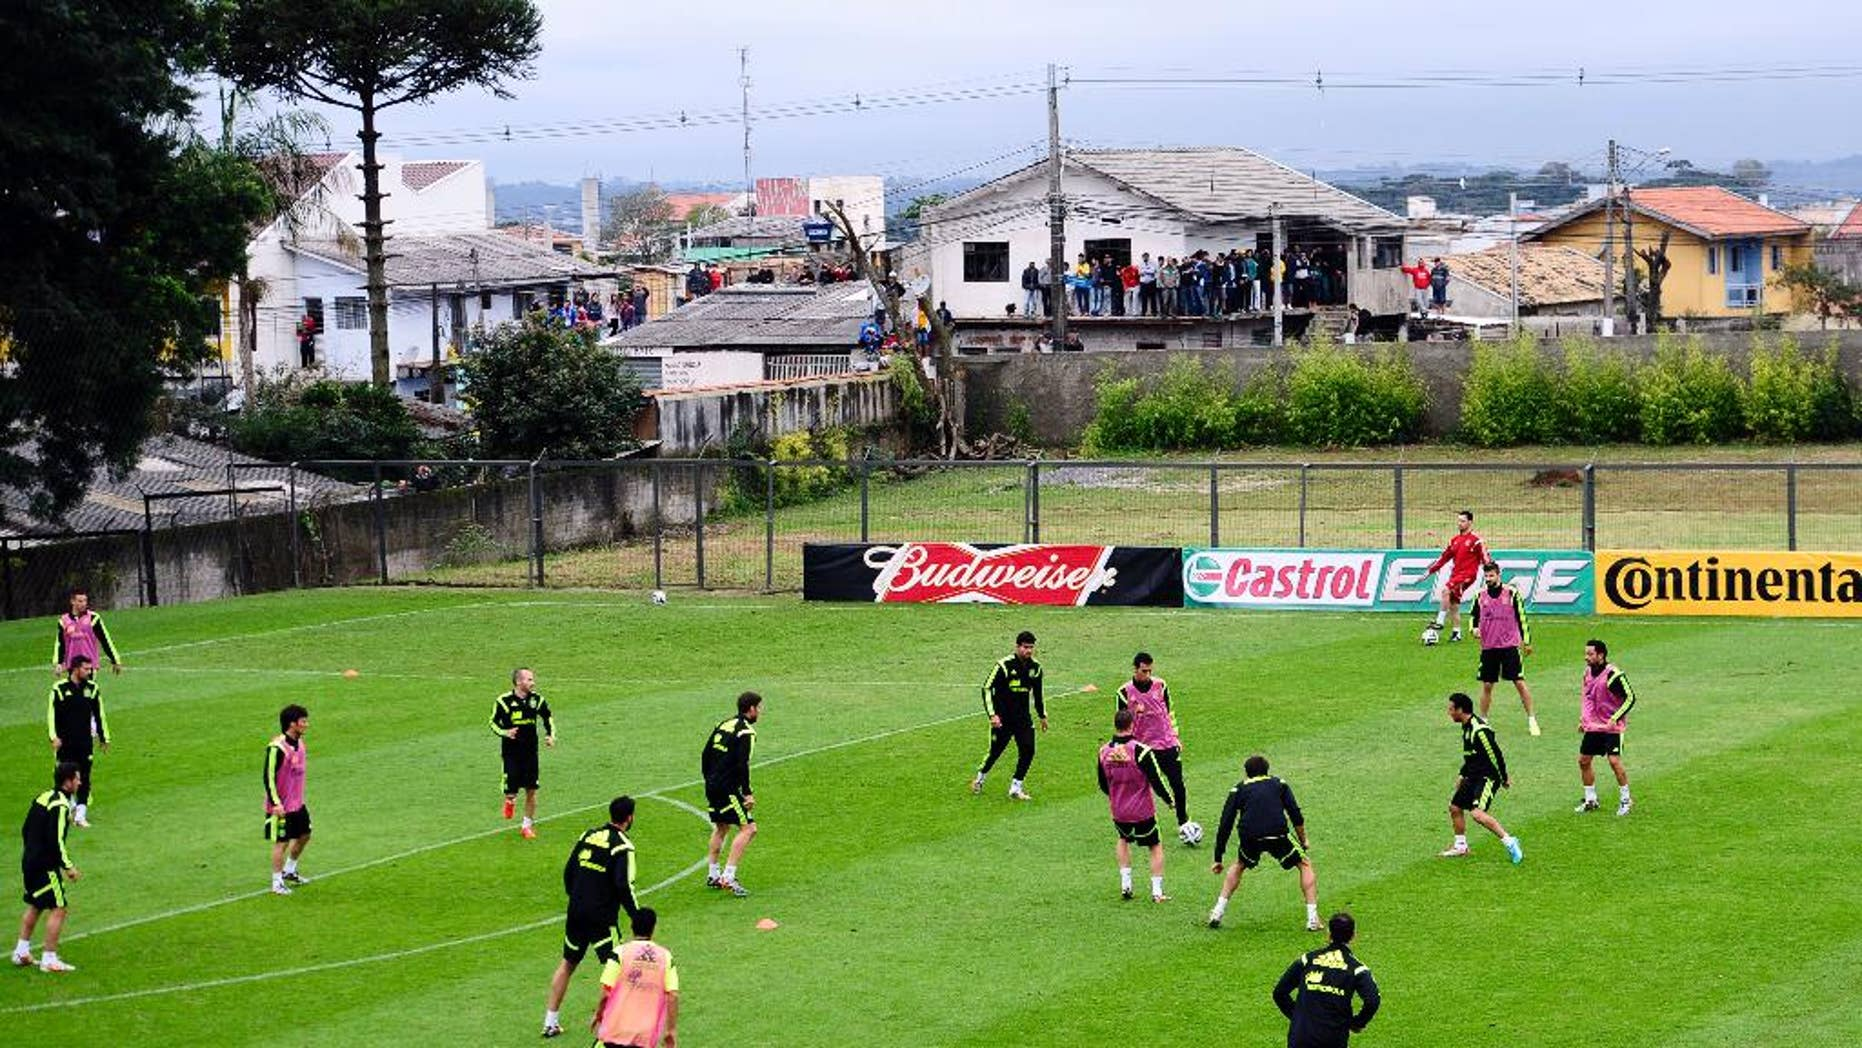 Spanish national team players attend a training session at the Atletico Paranaense training center in Curitiba, Brazil, Tuesday, June 10, 2014. Spain will play in group B of the Brazil 2014 World Cup. (AP Photo/Manu Fernandez)